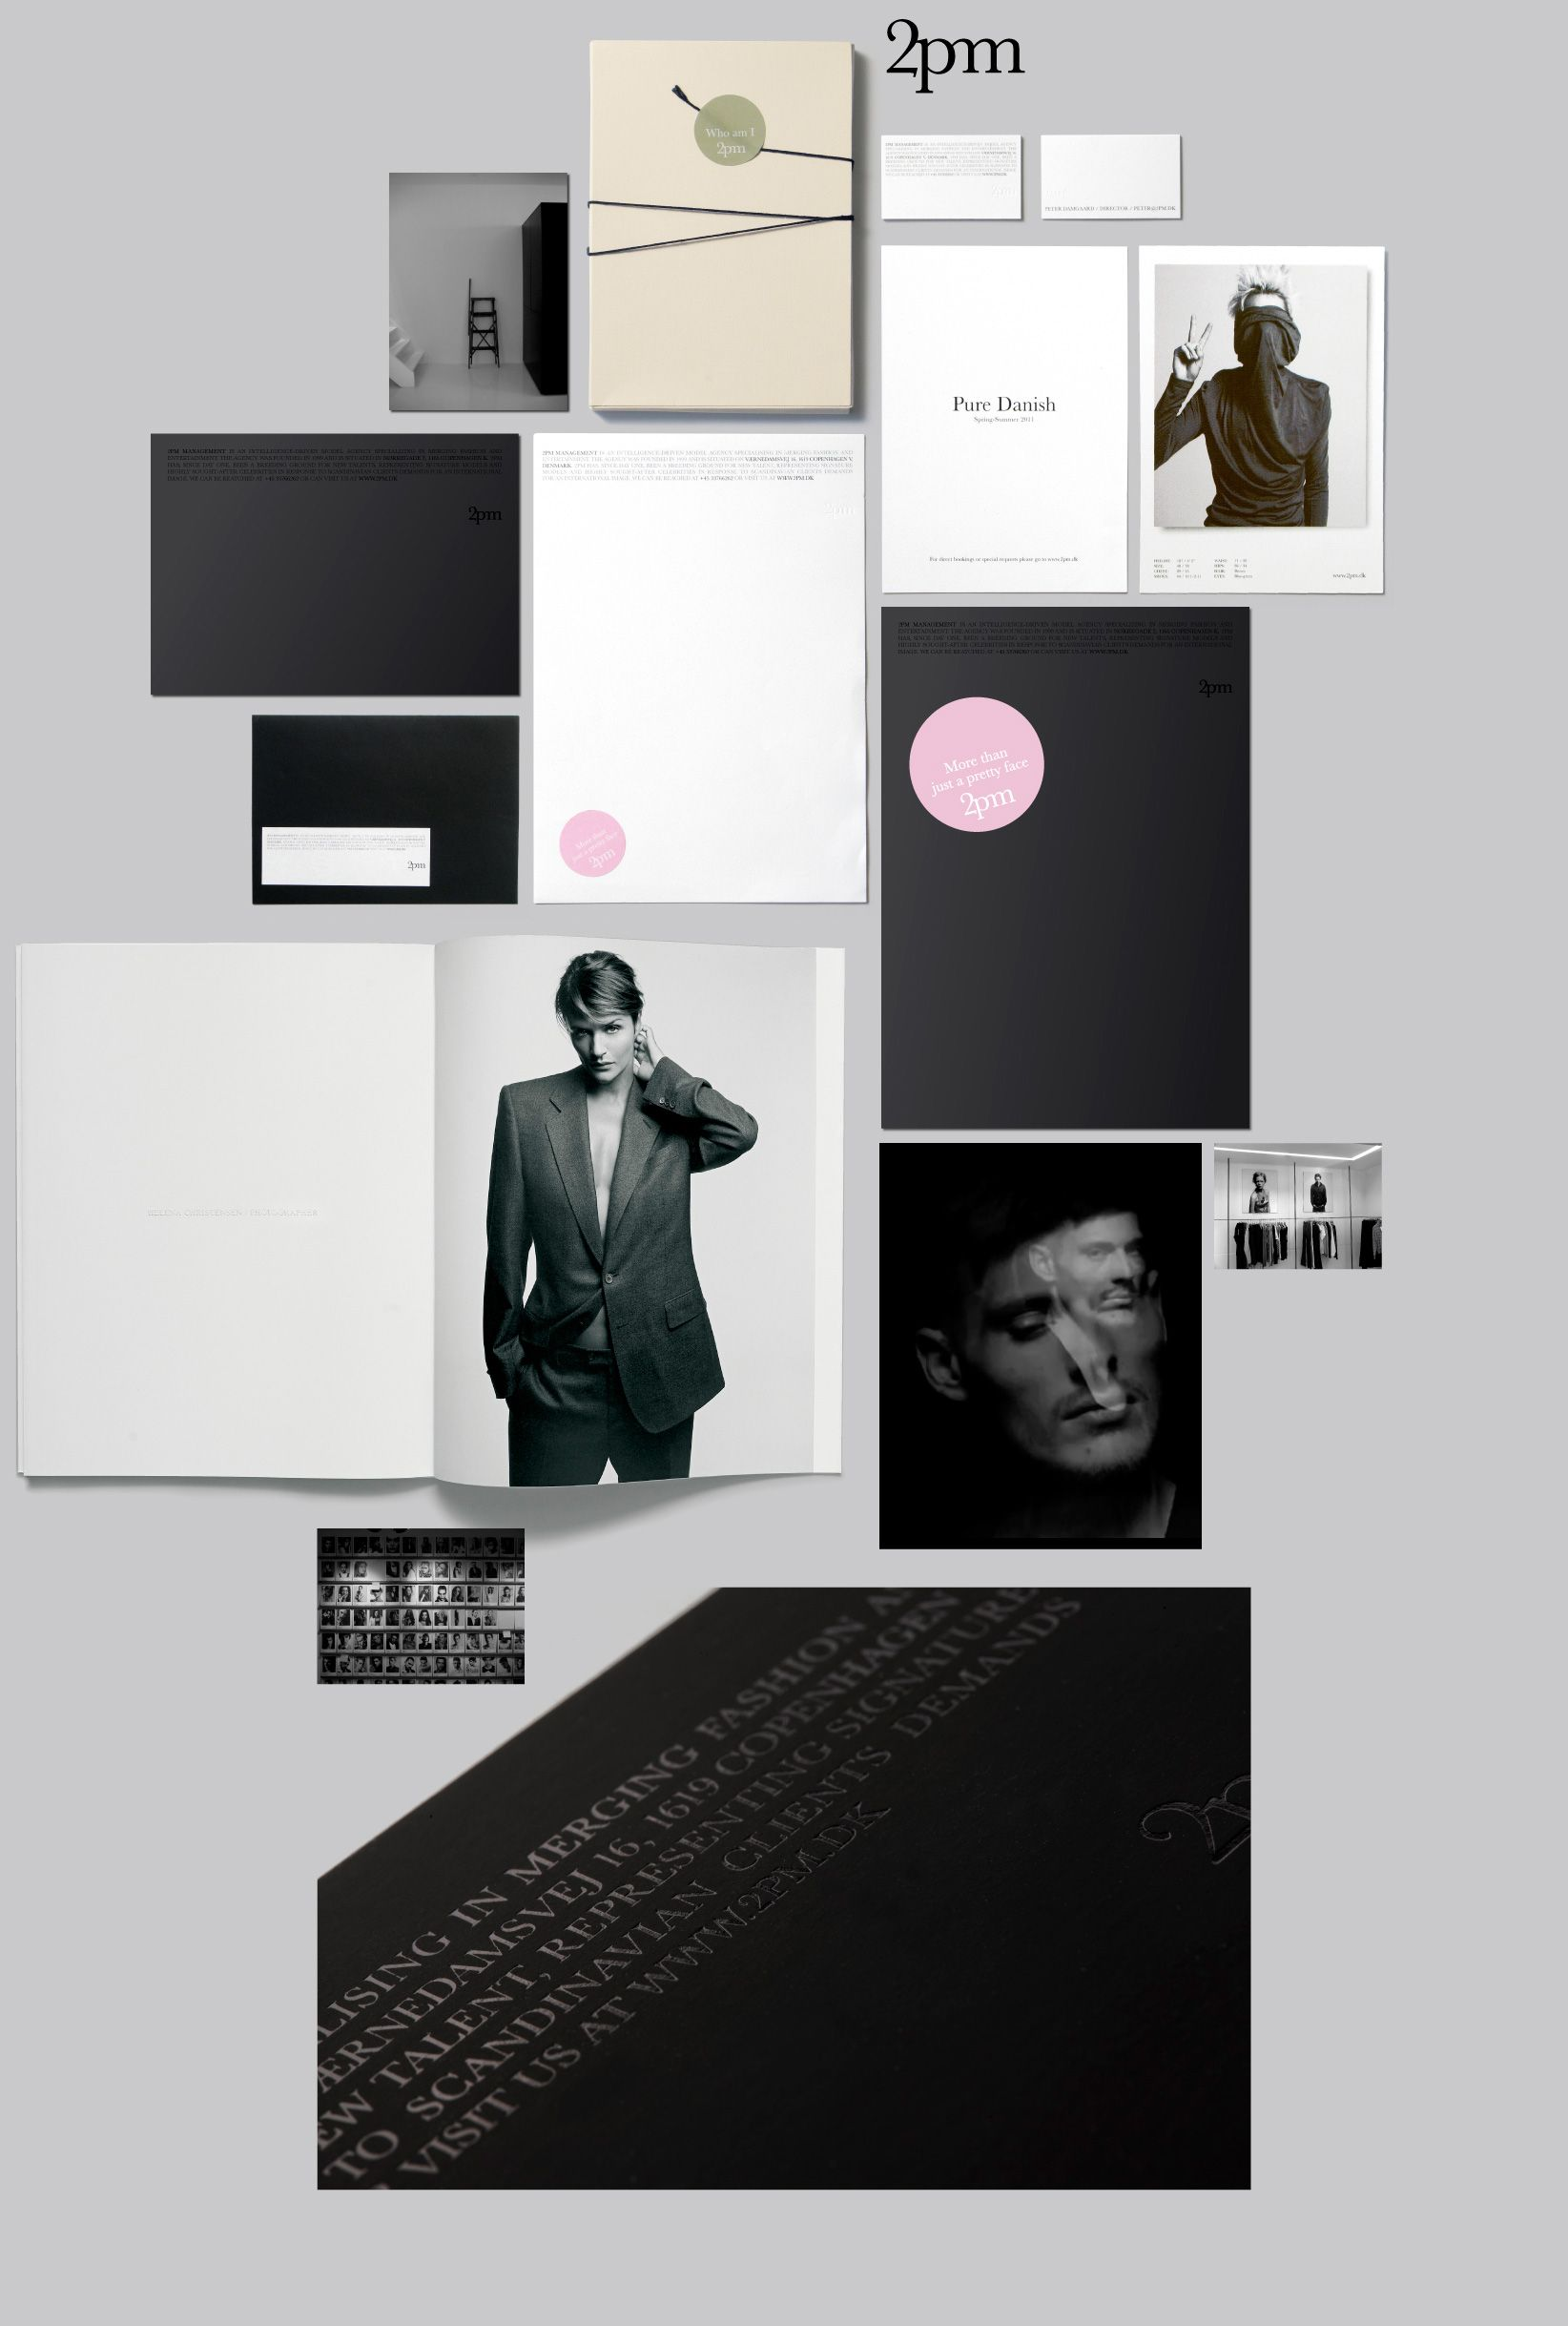 2pm is a modelling agency with an intellectual feel. Corporate Visual Identity by Scandinavian Design Lab | #identity #stationary #print | www.scandinaviandesignlab.com